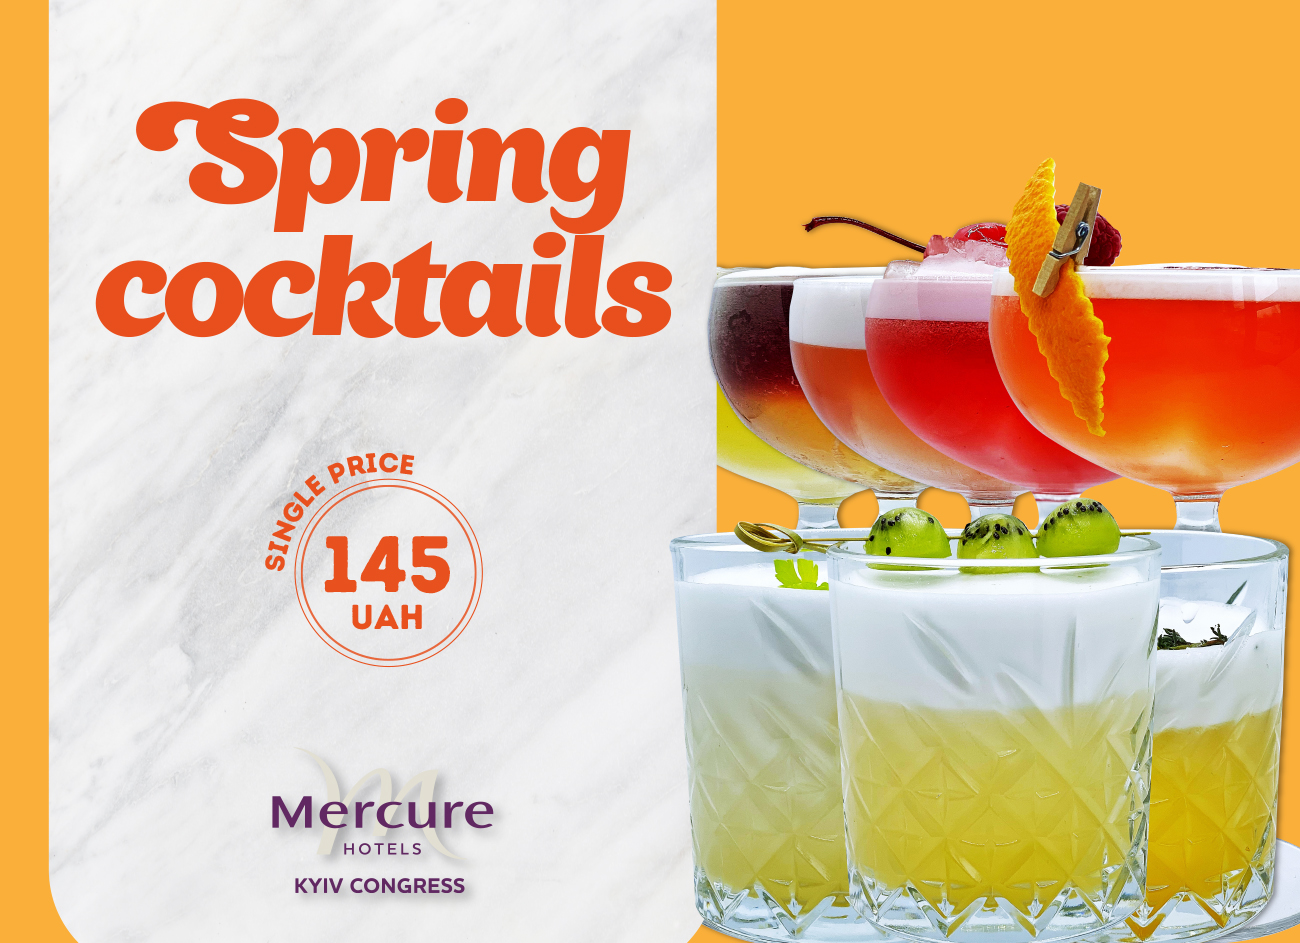 Introducing all-new spring cocktails! Mercure's lobby!